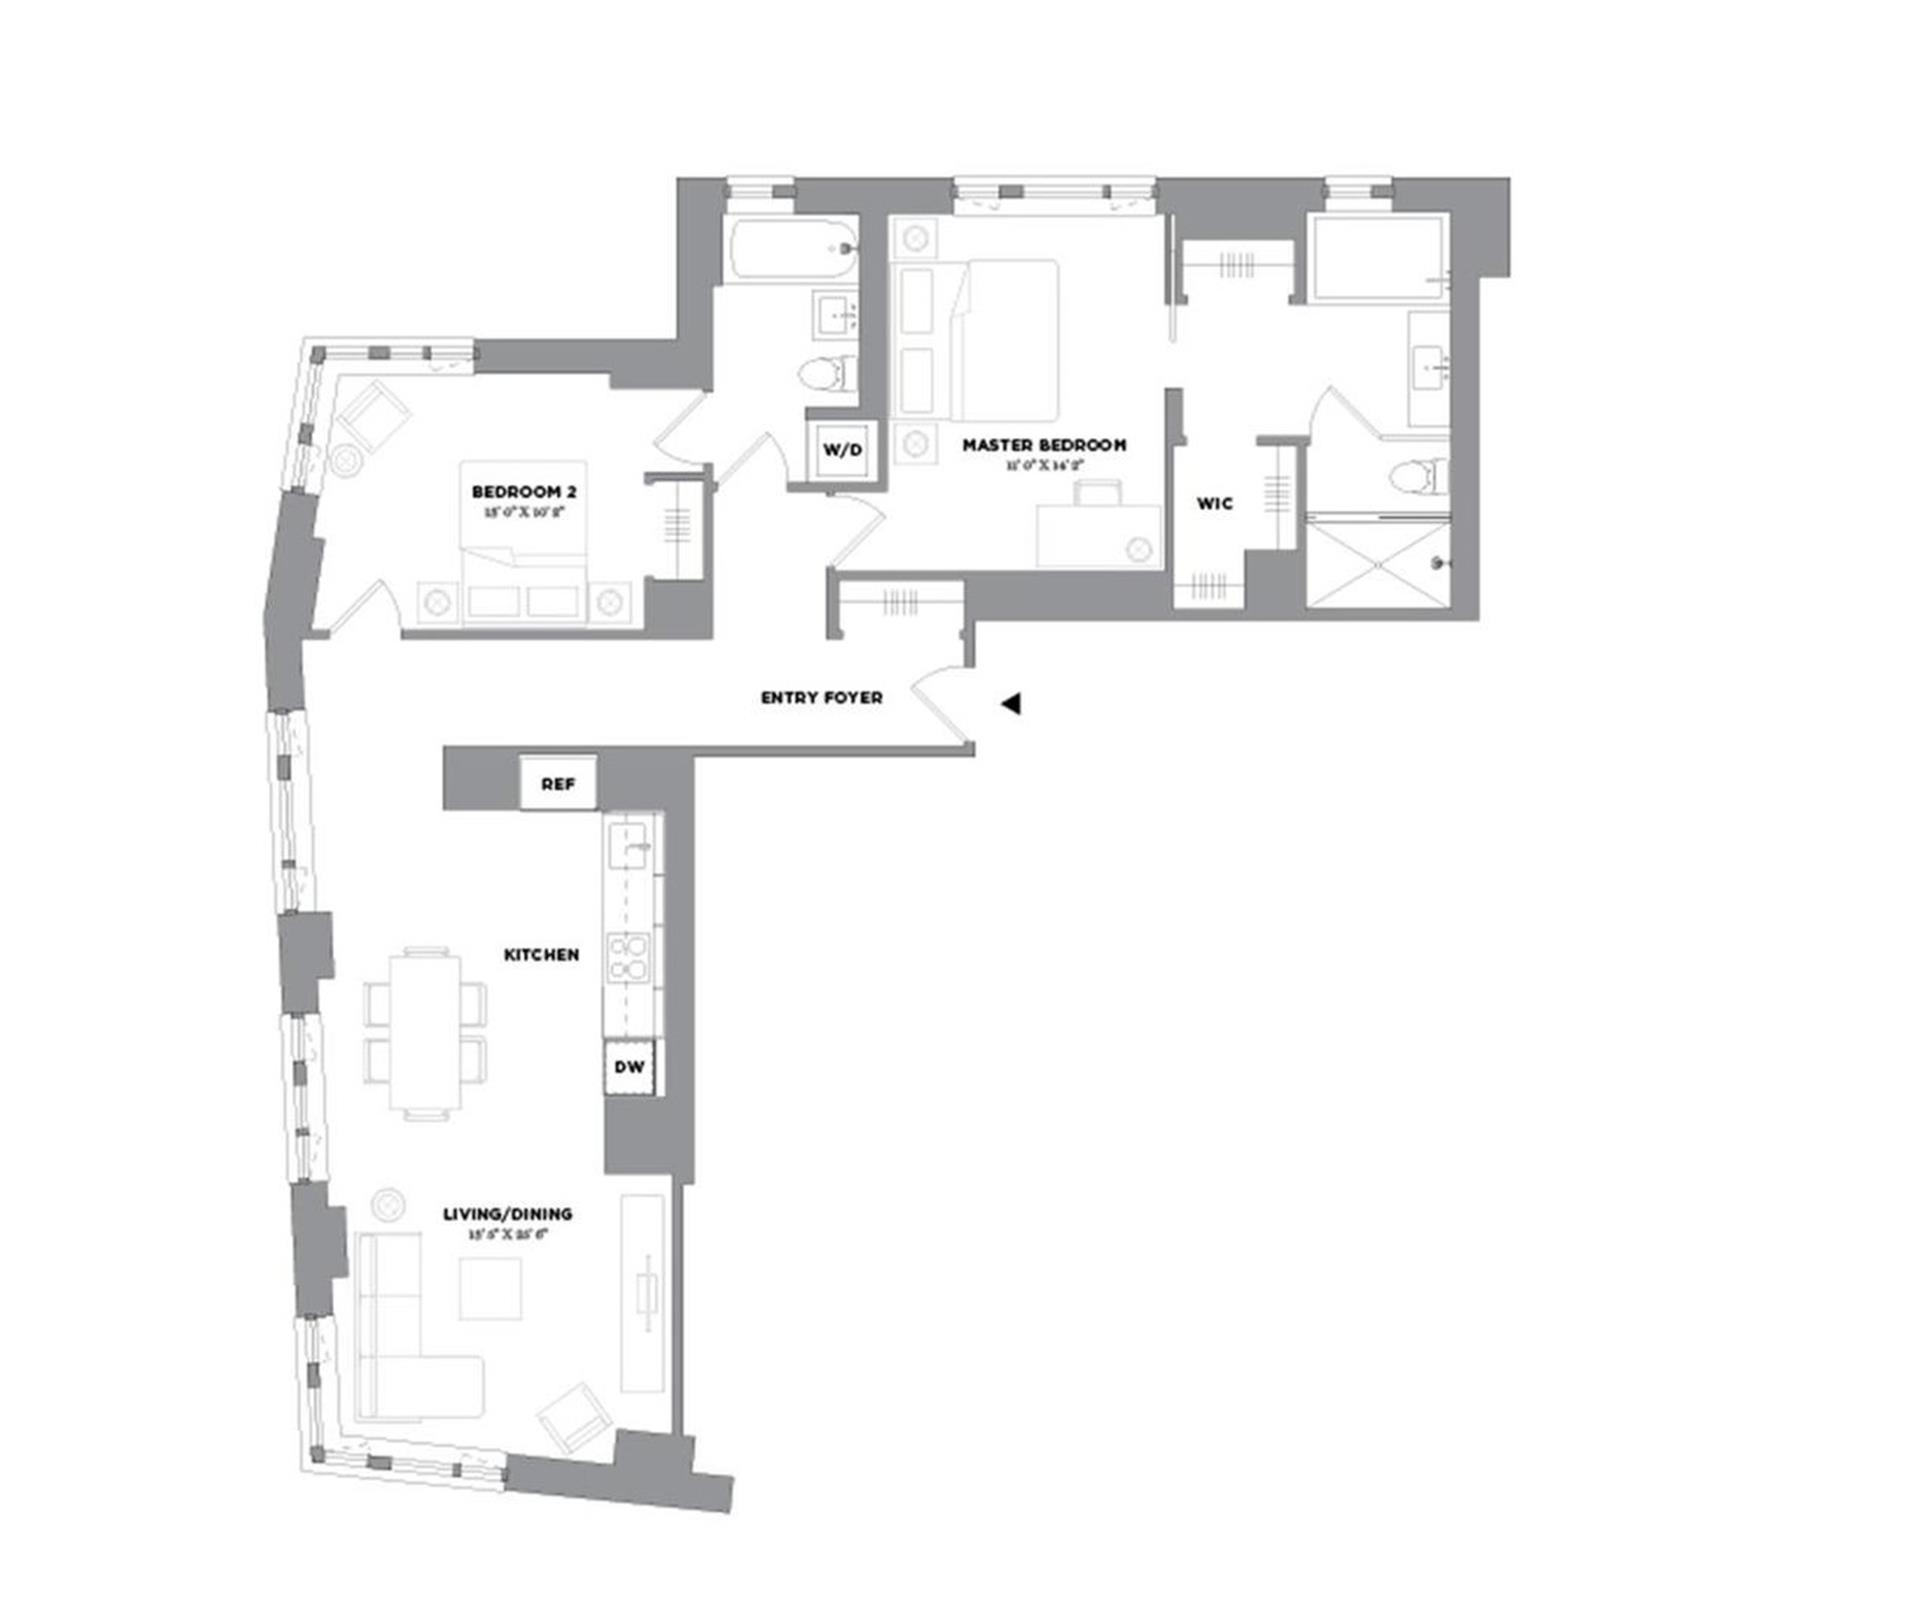 Floor plan of 15 William, 15 William Street, 30A - Financial District, New York